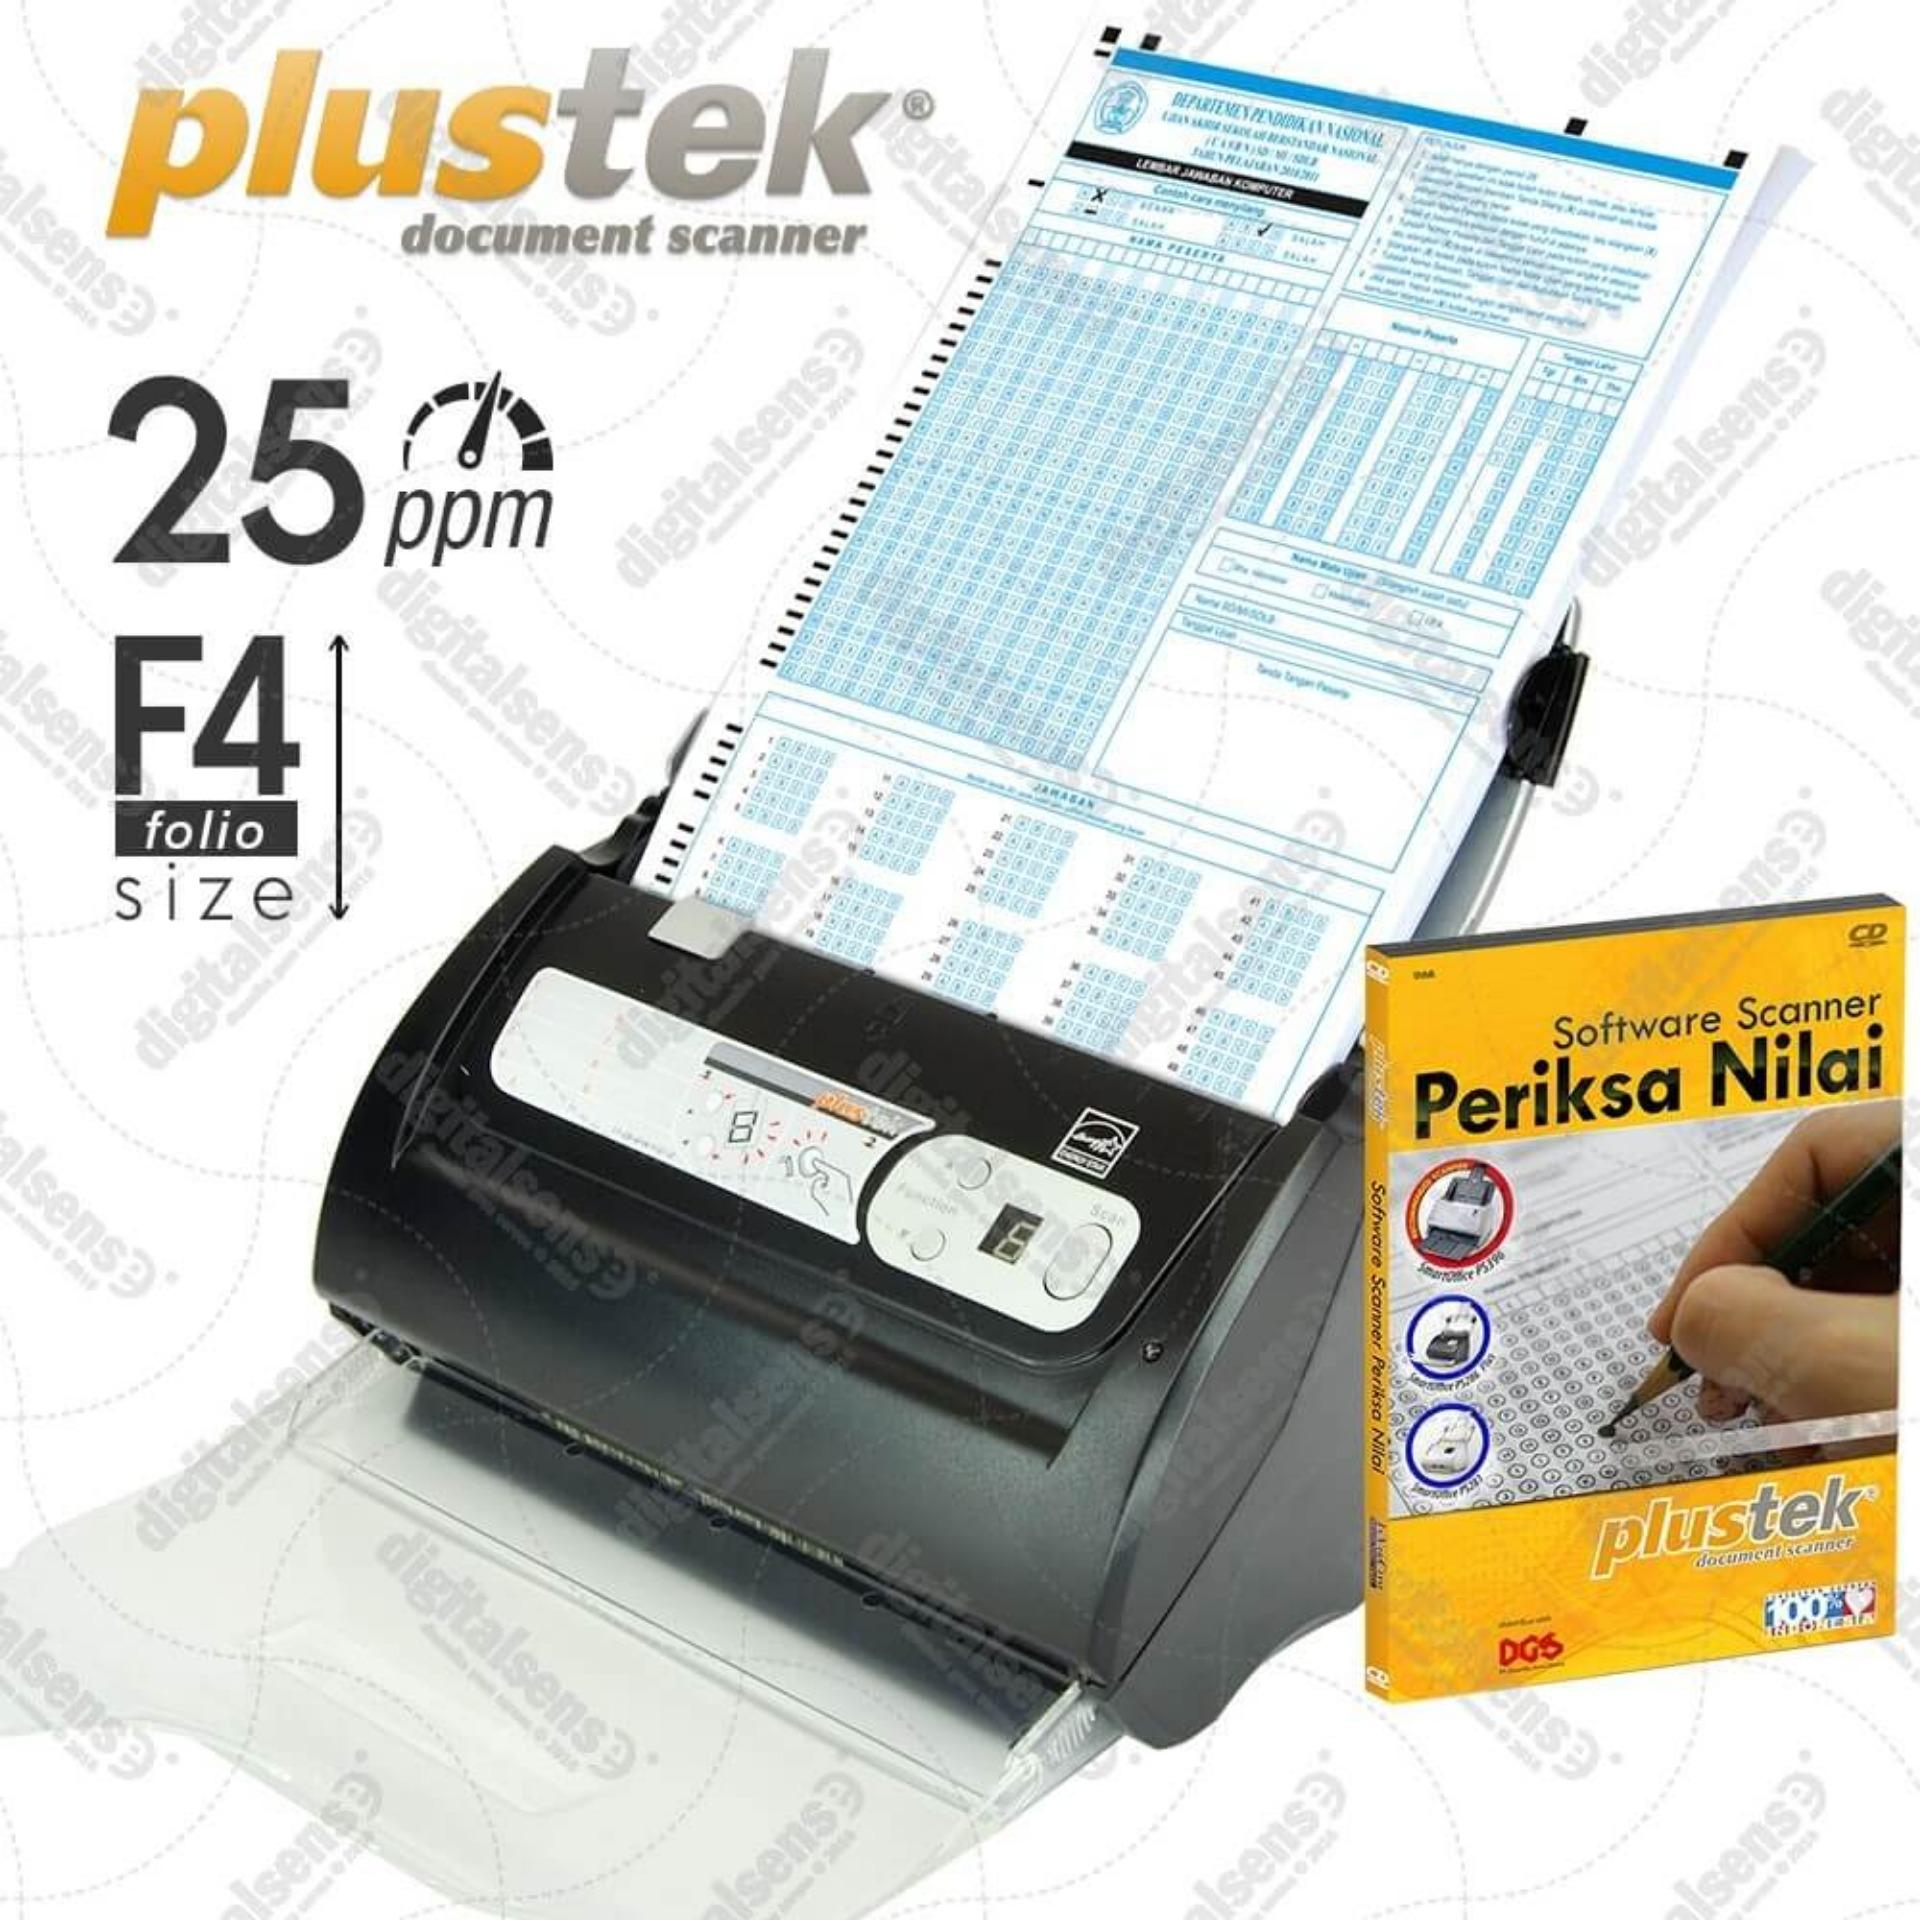 Obral Plustek Scanner Periksa Nilai Ljk 25 Lbr Mnt Ps286 Plus With Software Murah